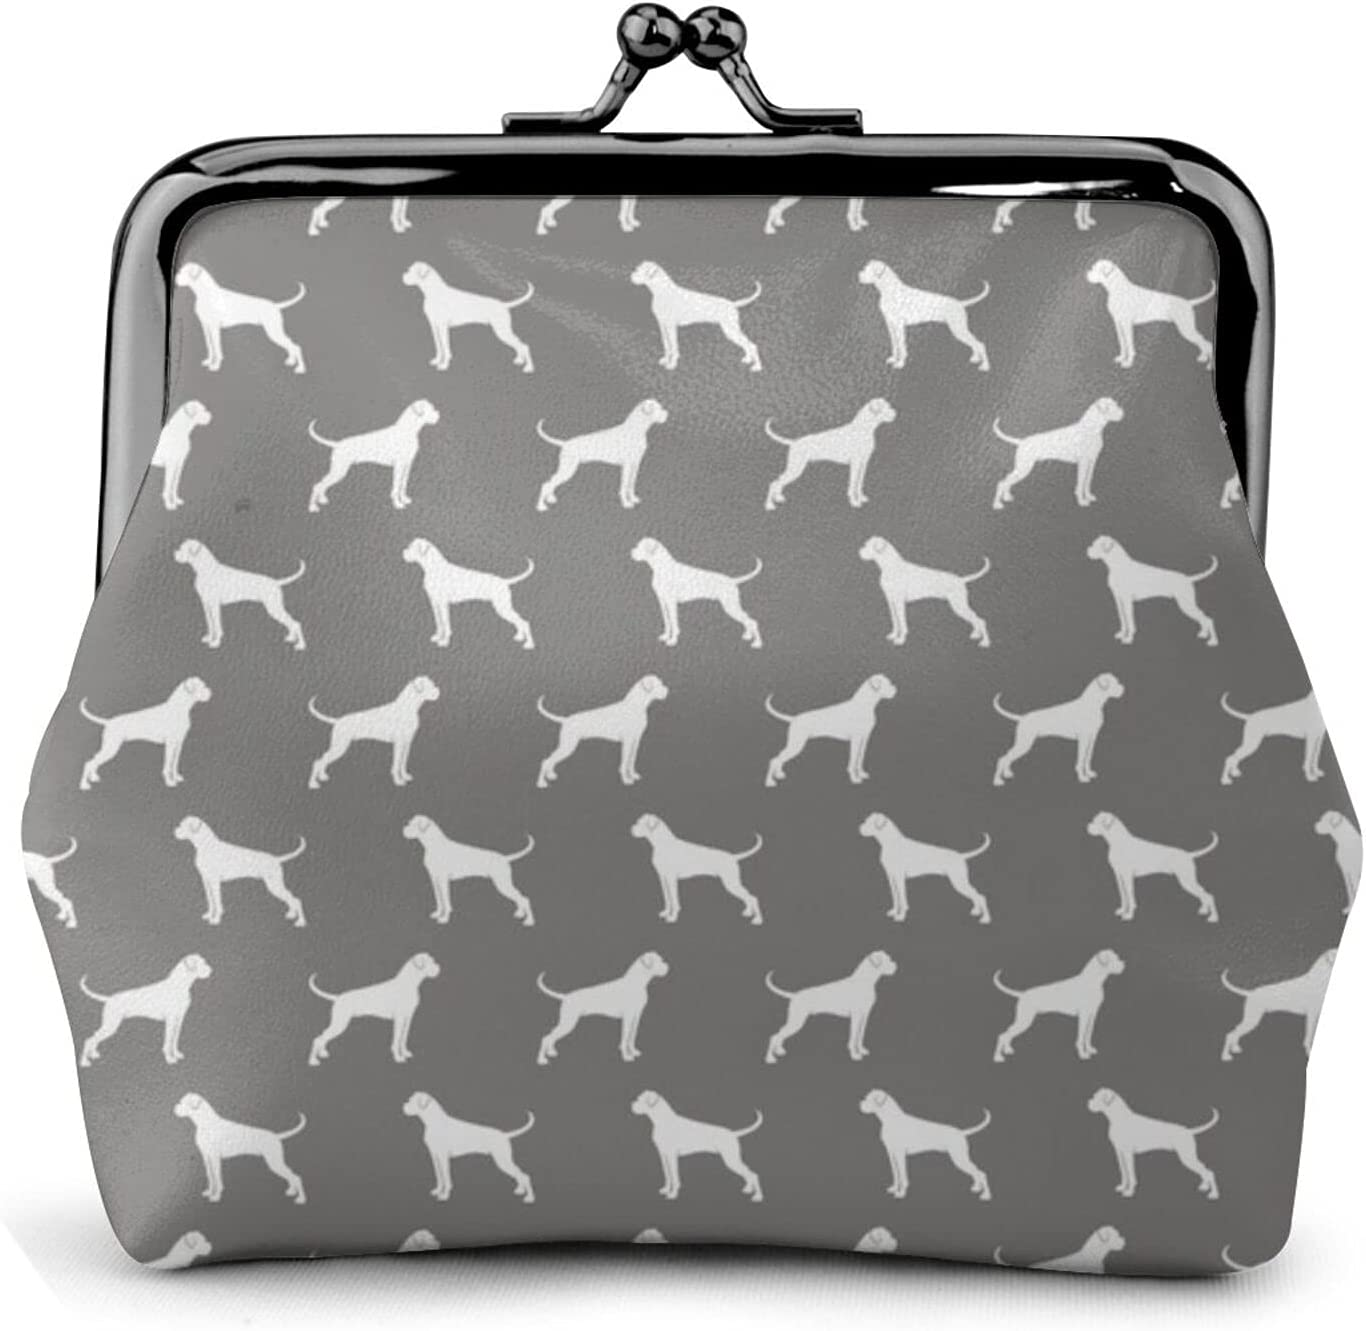 Boxer Dogs On 1175 Women'S Wallet Buckle Coin Purses Pouch Kiss-lock Change Travel Makeup Wallets, Black, One Size